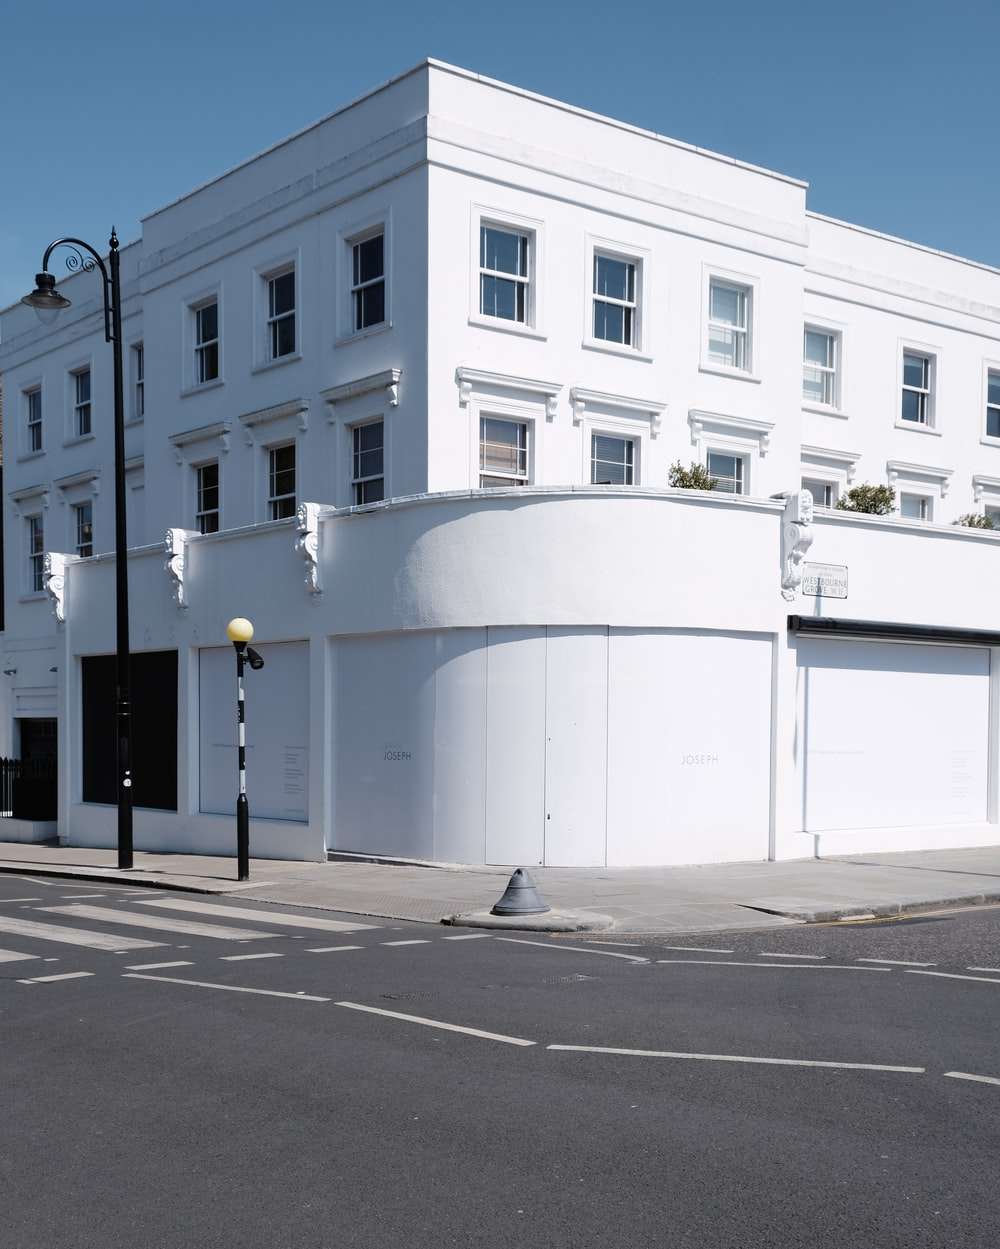 white concrete building near road during daytime